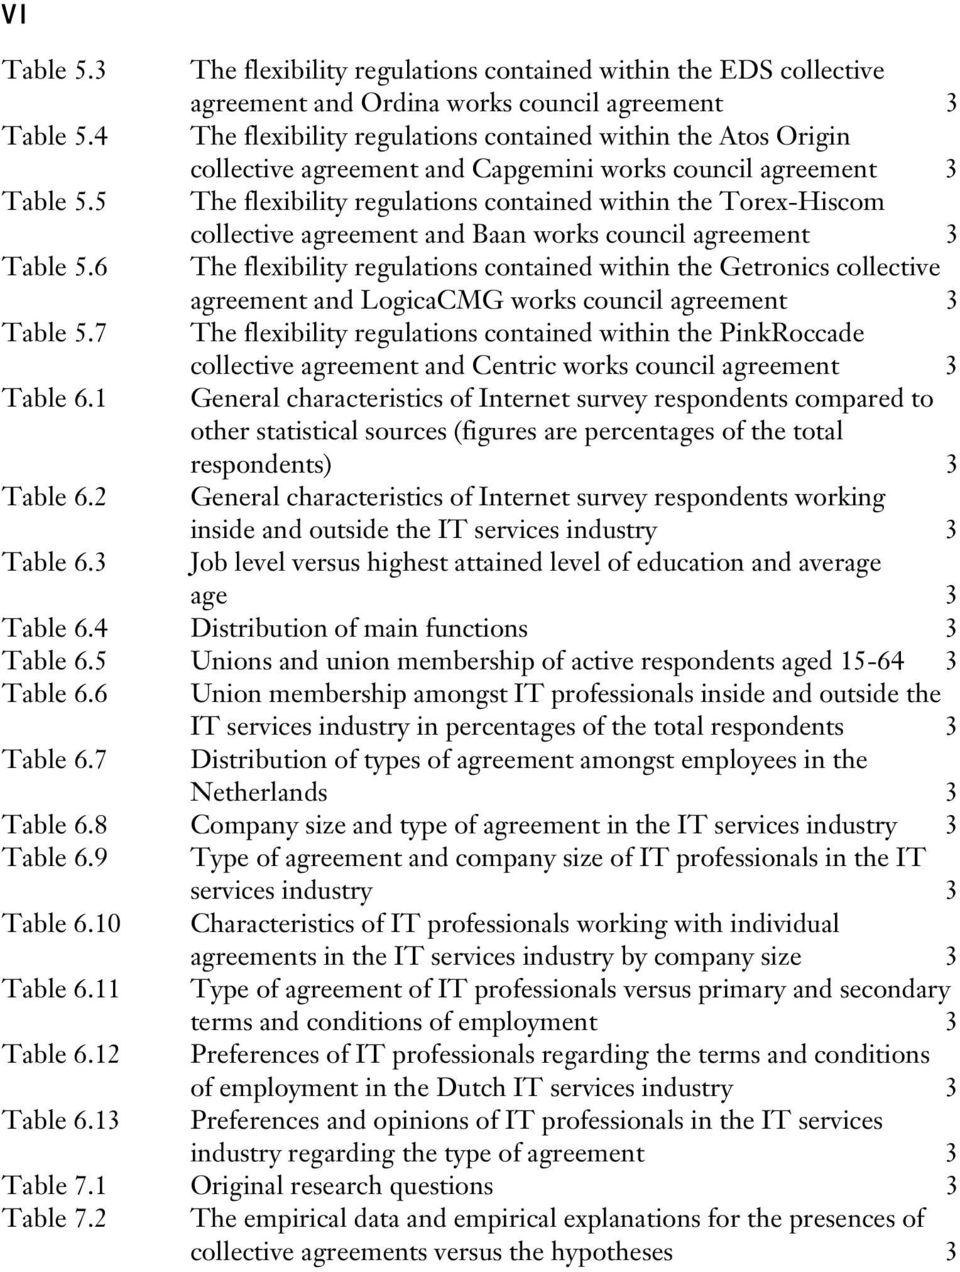 5 The flexibility regulations contained within the Torex-Hiscom collective agreement and Baan works council agreement 3 Table 5.